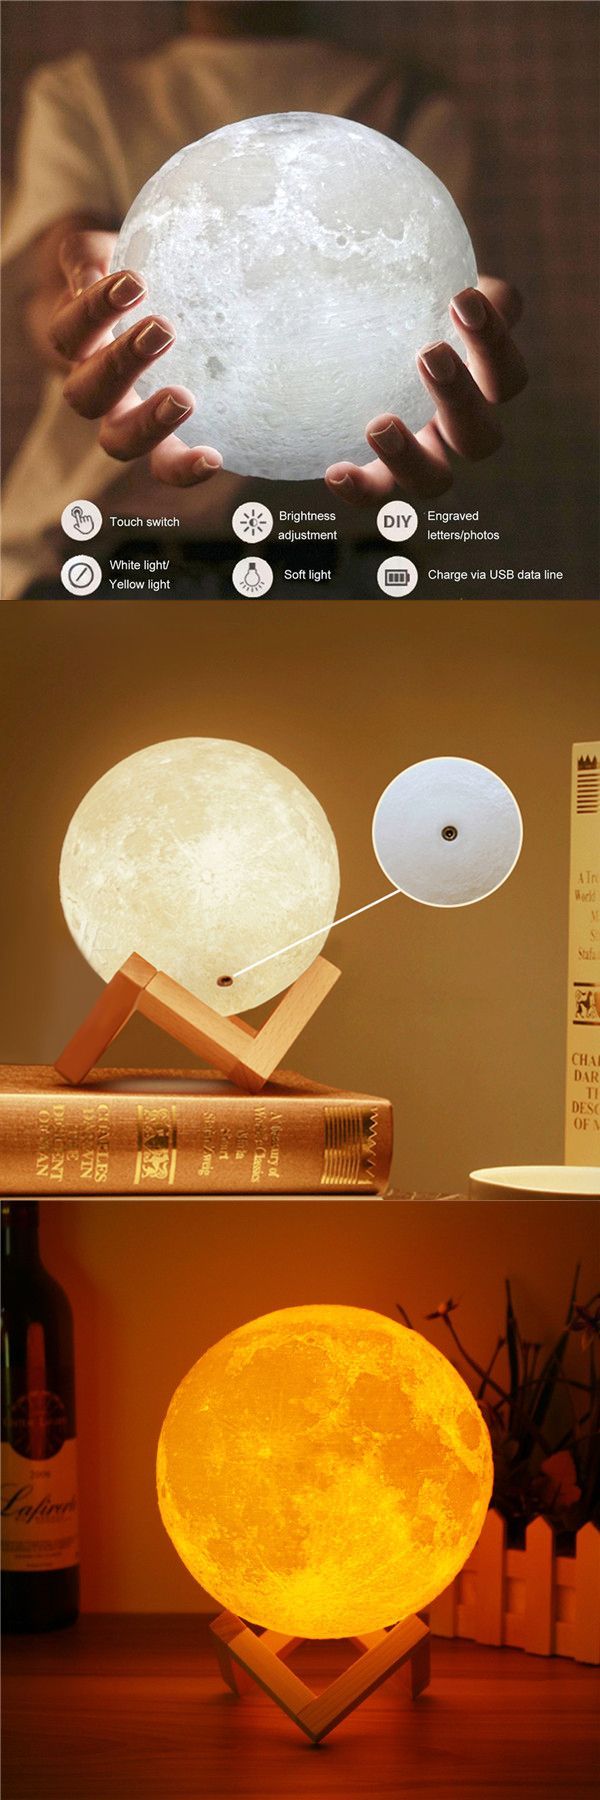 DecBest Magical Two Tone Moon Lamp USB